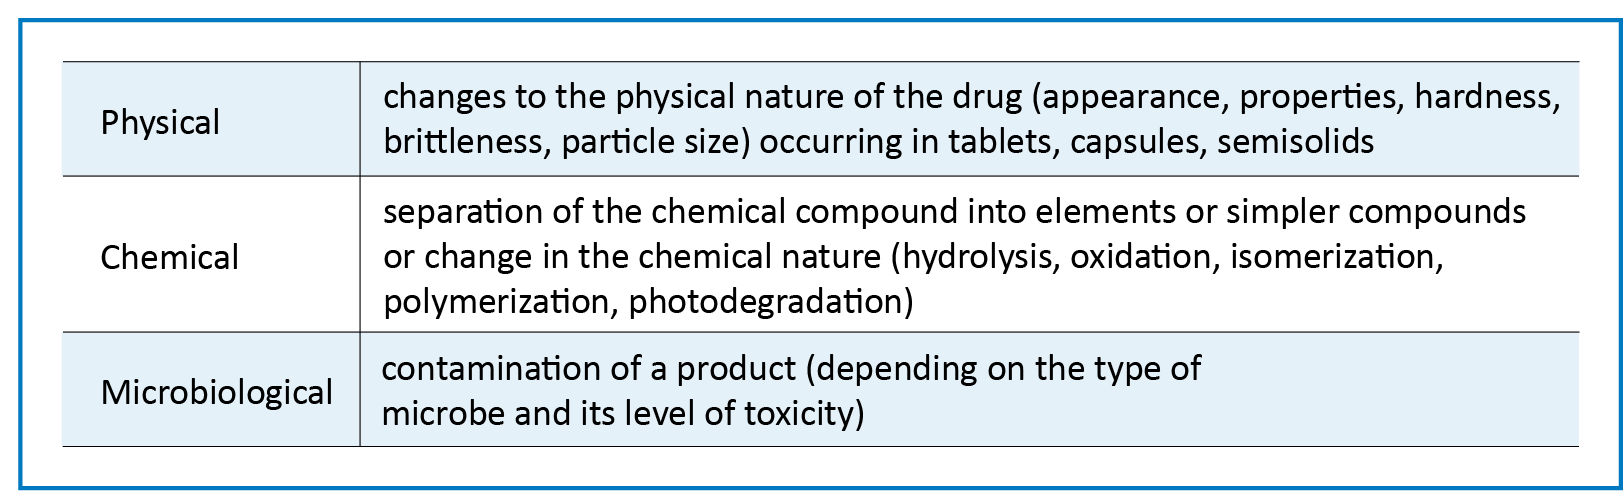 Fundamental degradation stability factors involving the efficacy and shelf life of APIs/finished drug products